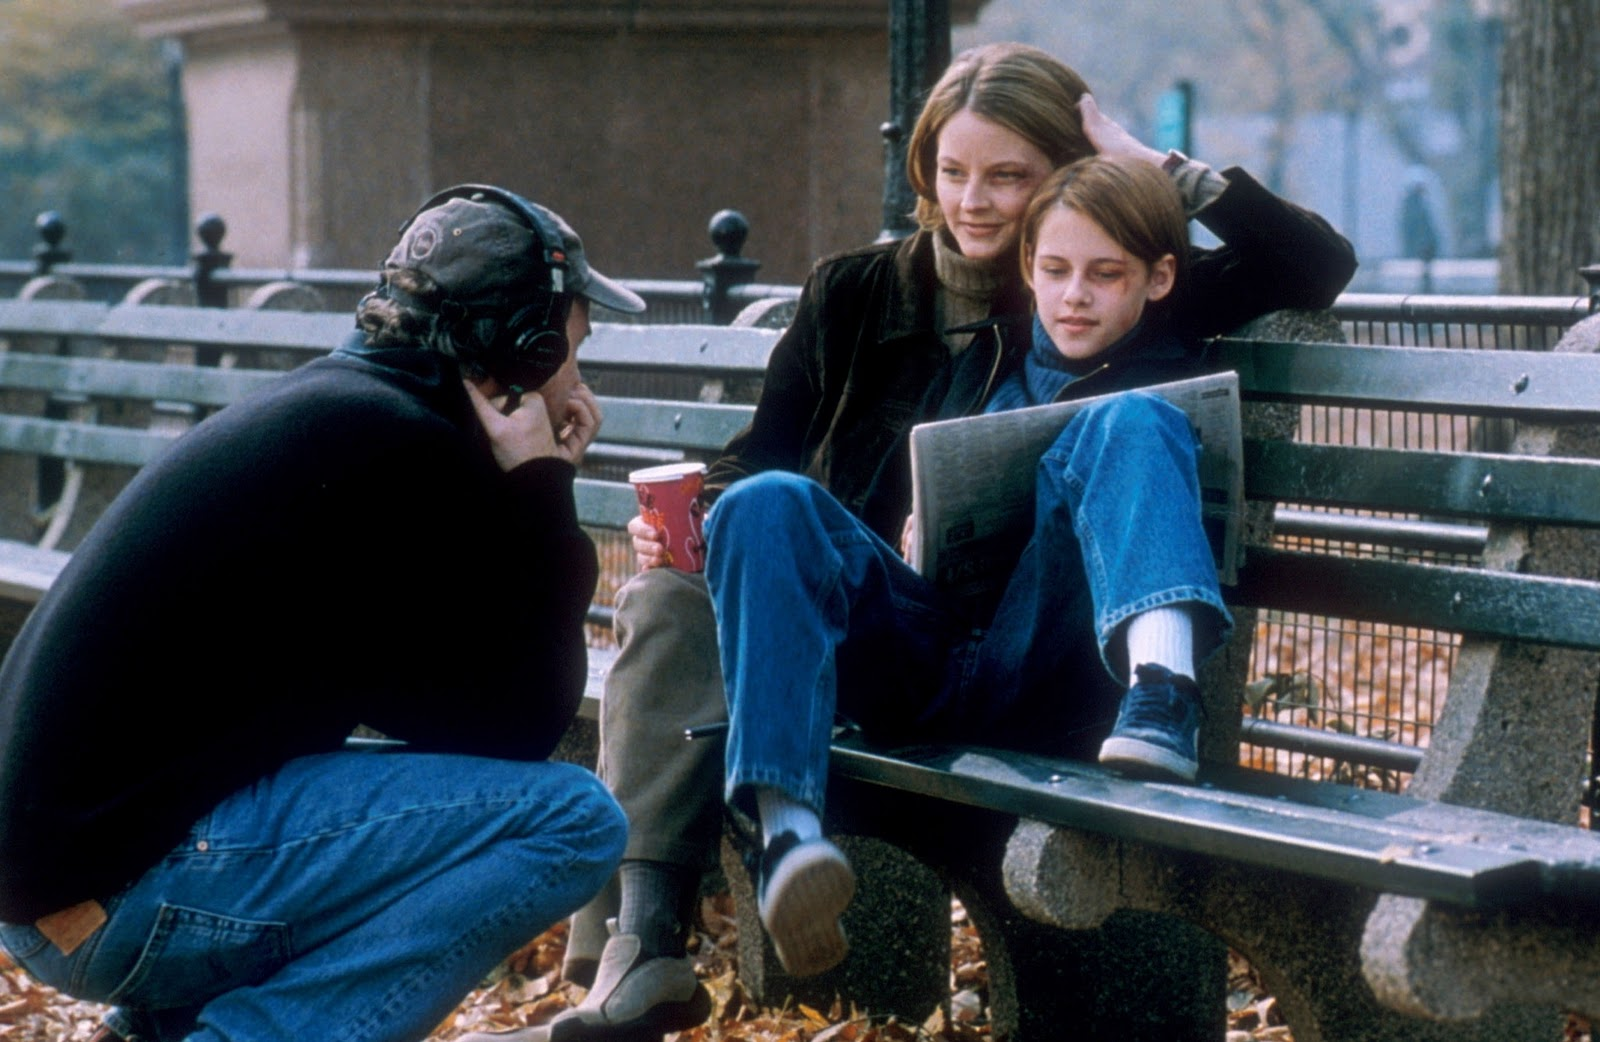 2002-Panic-Room-Behind-the-Scenes-kristen-stewart-10321391-2560-1667